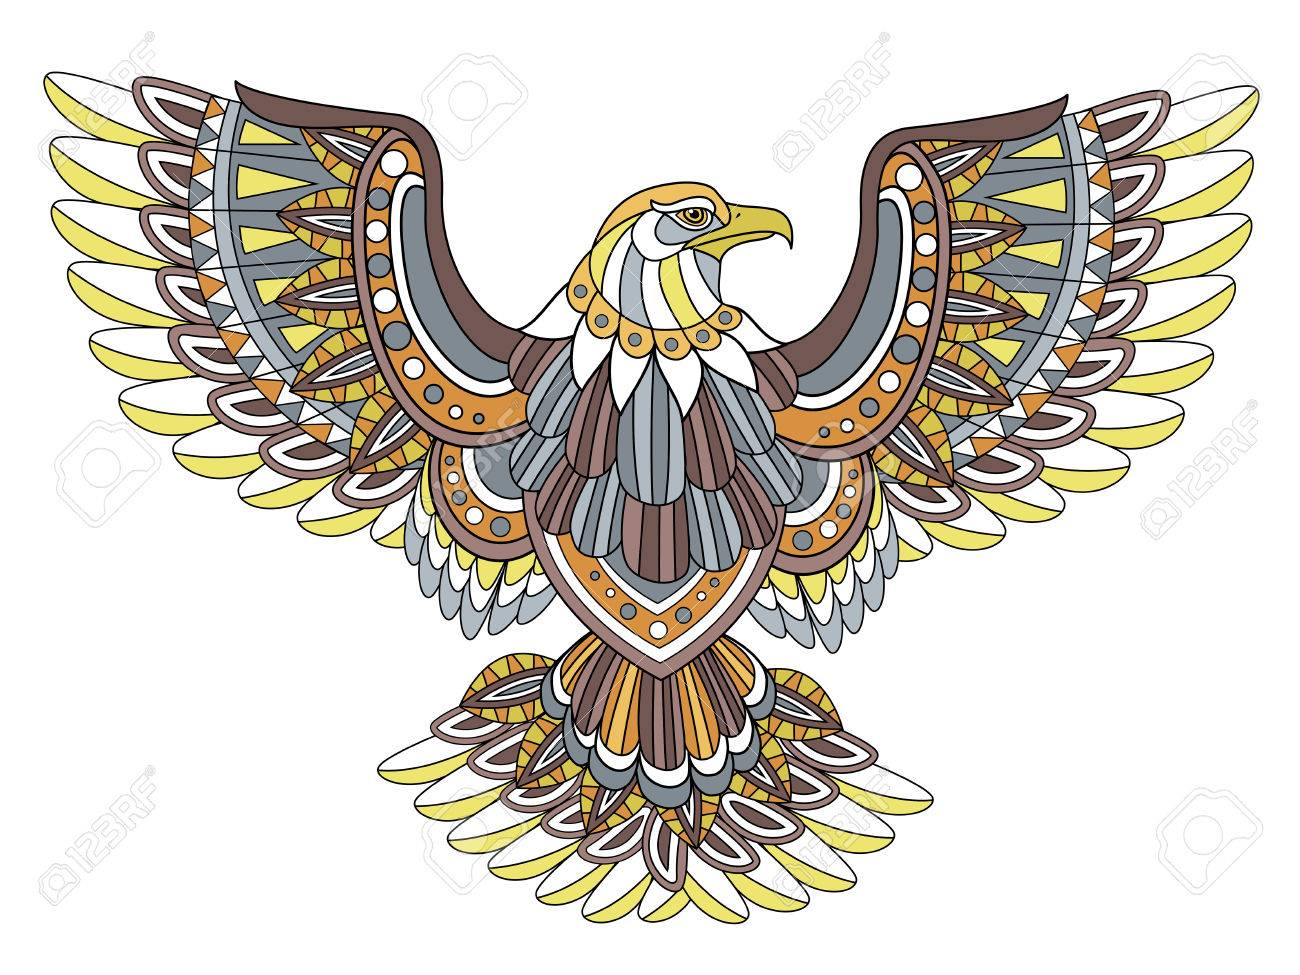 Flying Eagle Coloring Page In Exquisite Style Royalty Free Cliparts ...